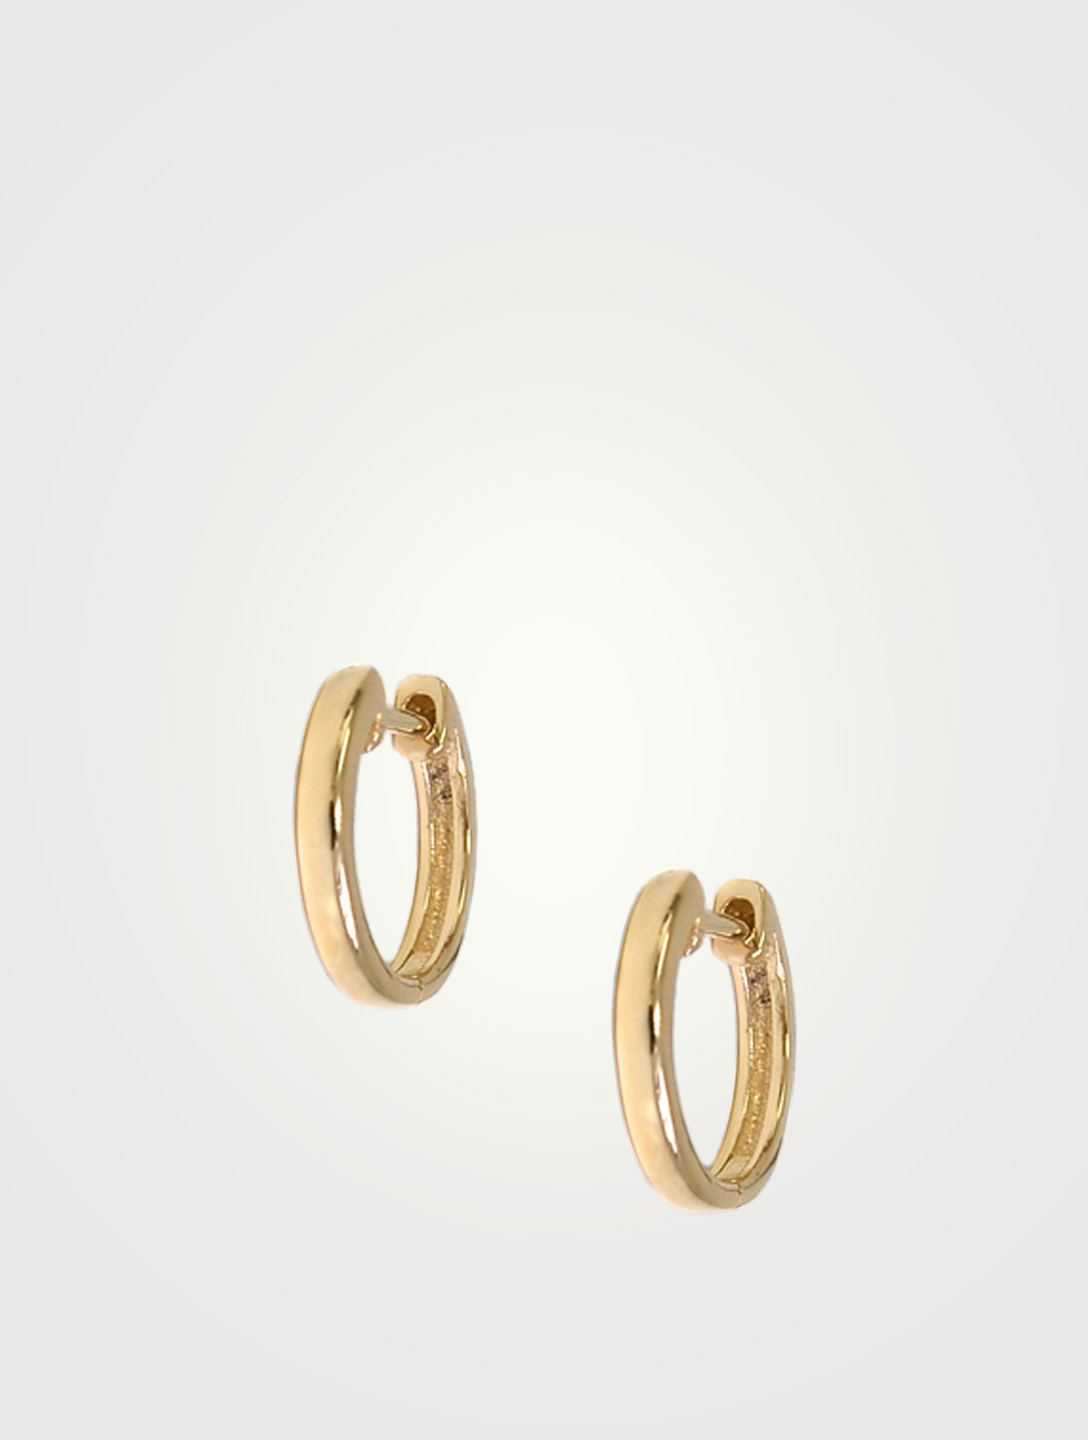 ANZIE Mini Cléo 14K Gold Huggie Hoop Earrings Women's Metallic